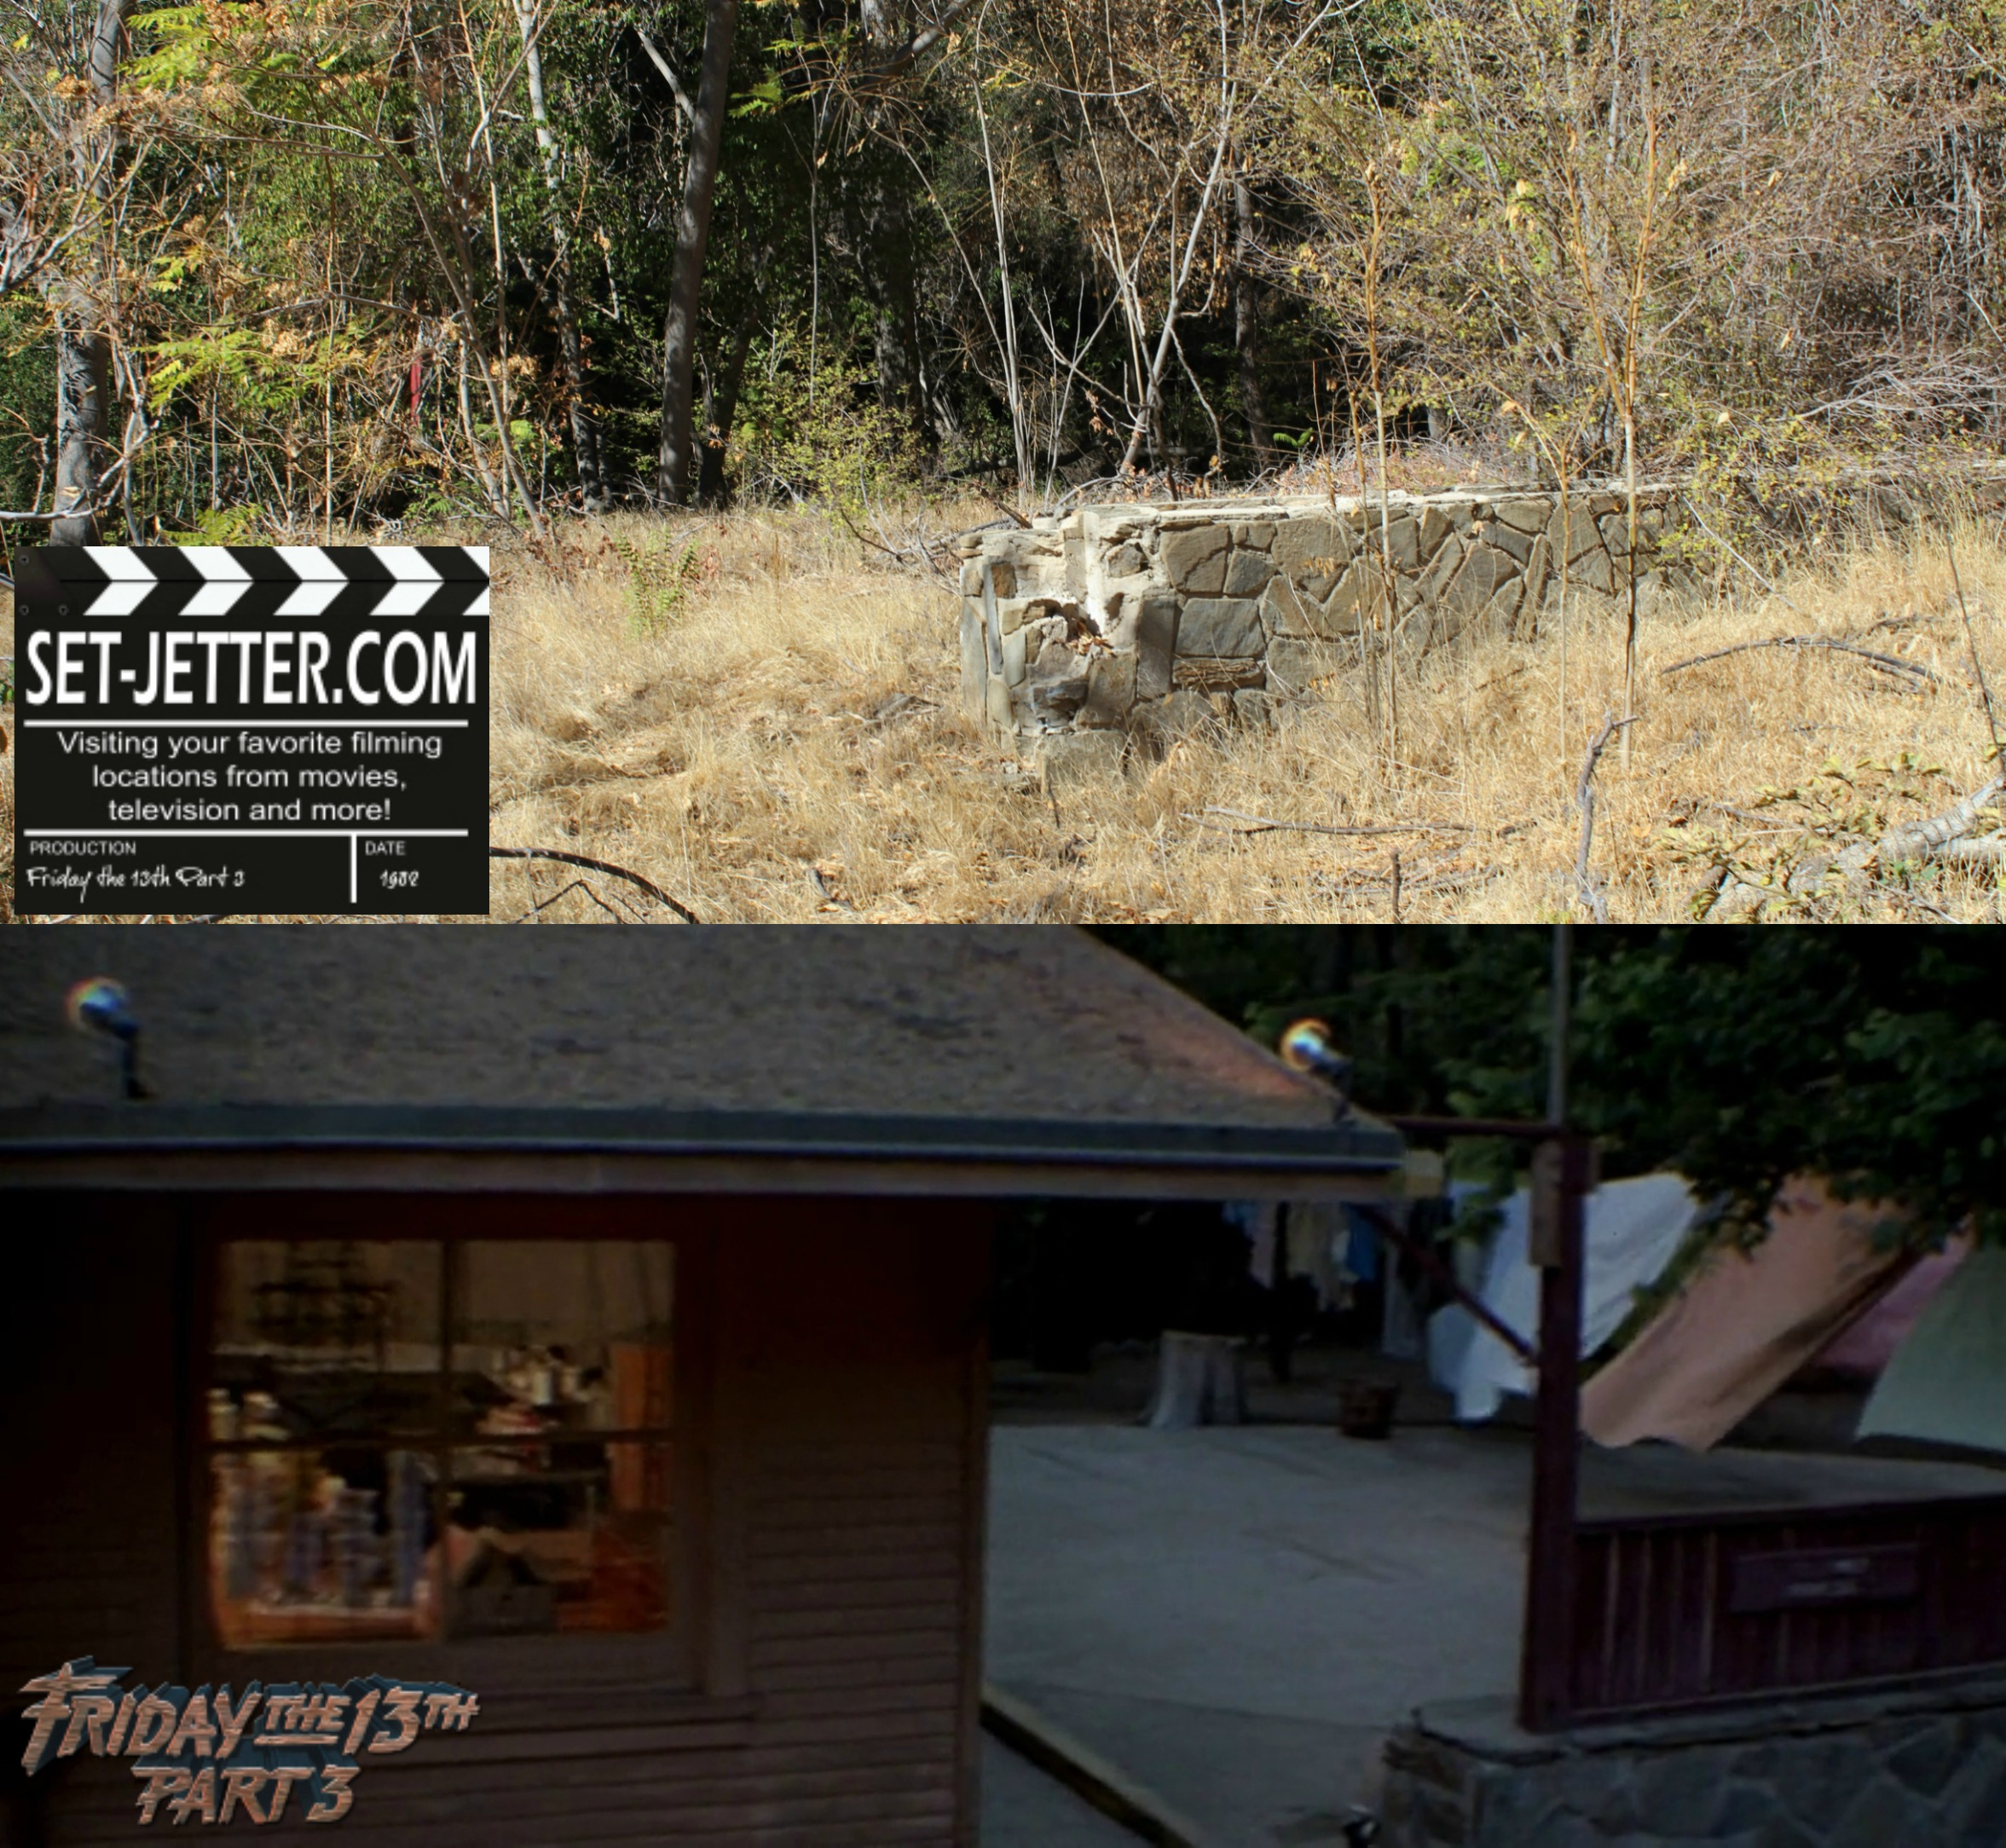 Friday the 13th Part 3 comparison 205.jpg